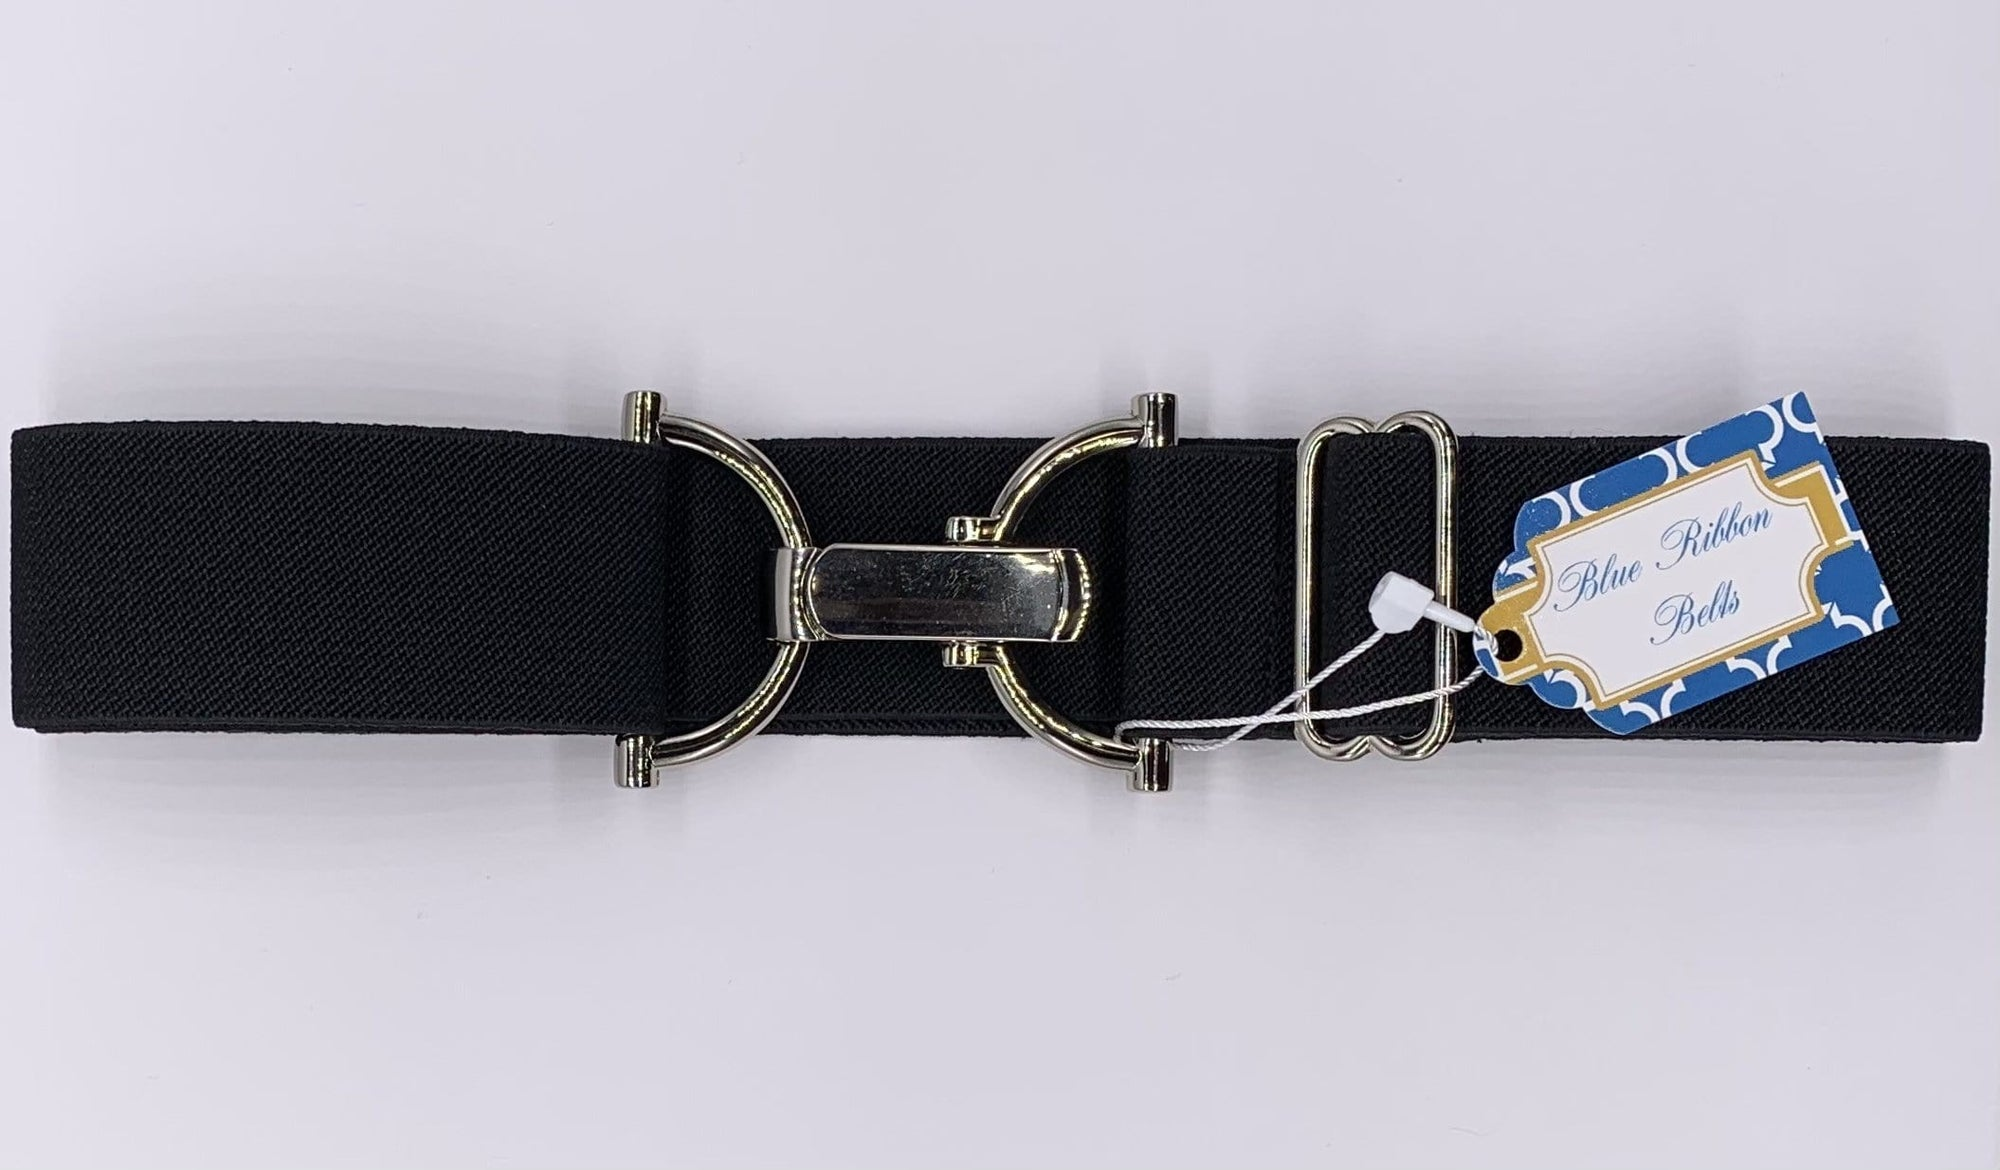 Blue Ribbon Belts Belt Black Belt 1.5 Inch equestrian team apparel online tack store mobile tack store custom farm apparel custom show stable clothing equestrian lifestyle horse show clothing riding clothes horses equestrian tack store